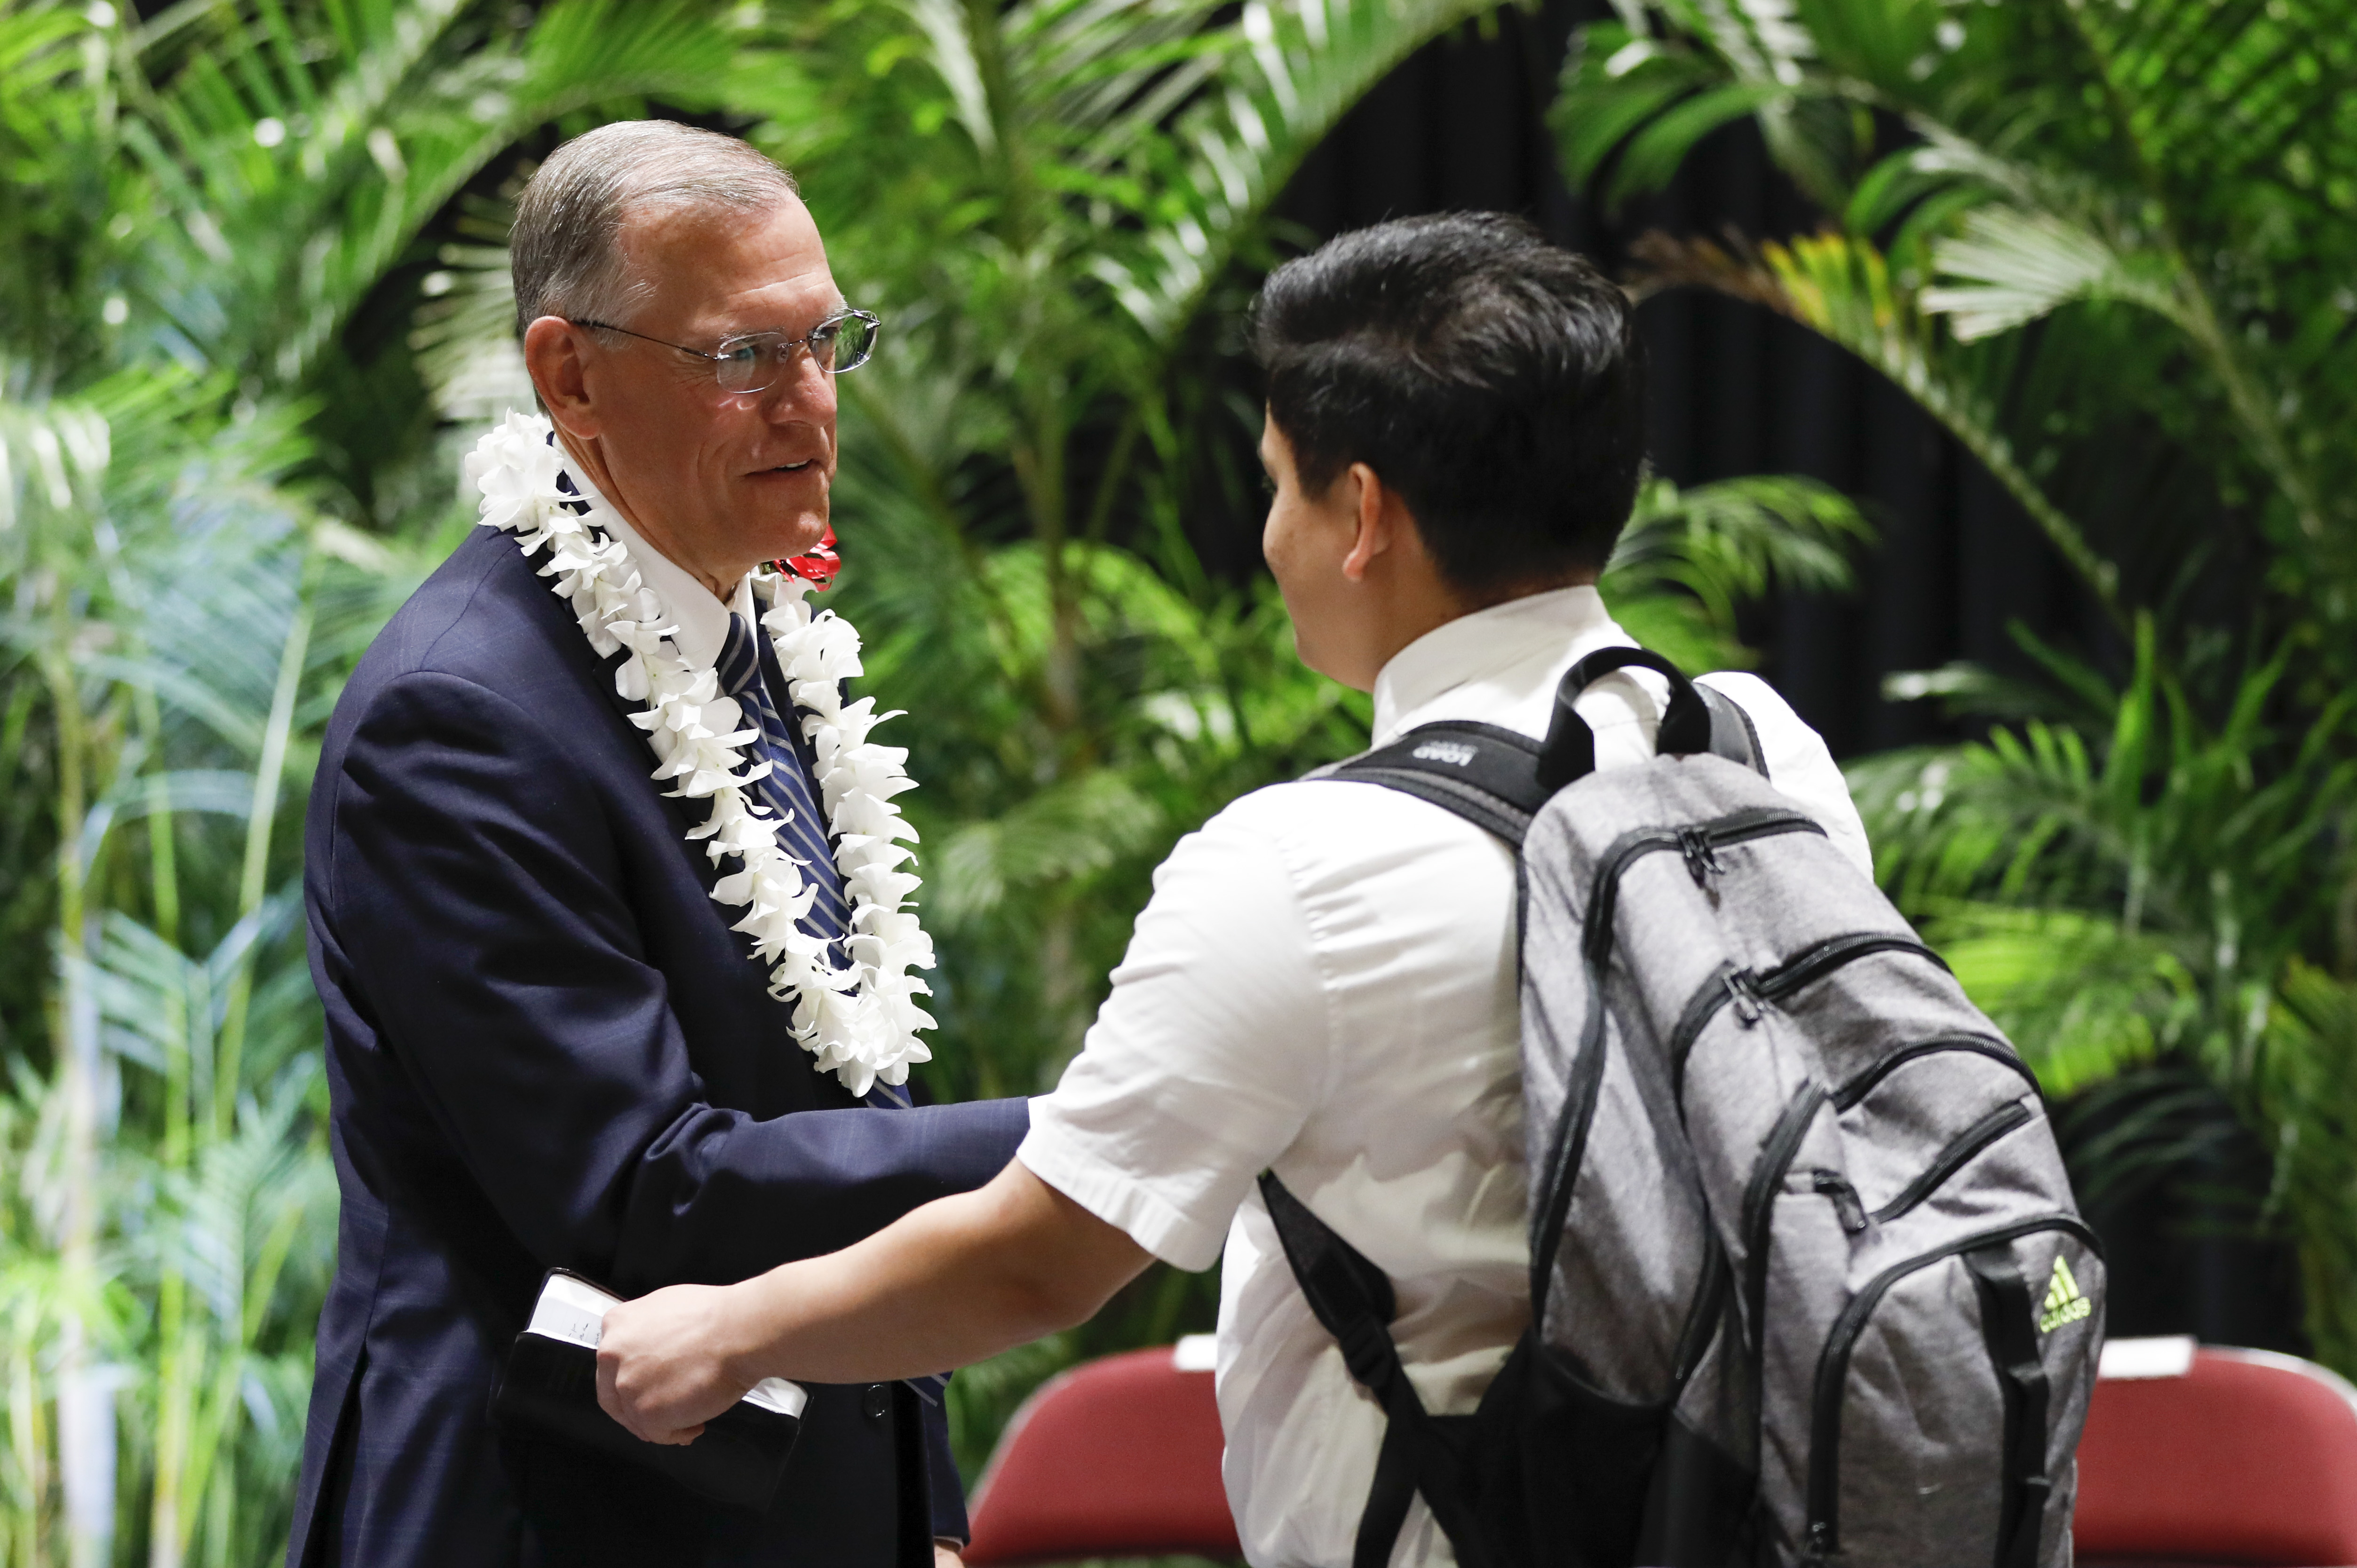 Elder Steven R. Bangerter greets students following a BYU-Hawaii devotional on March 19, 2019.